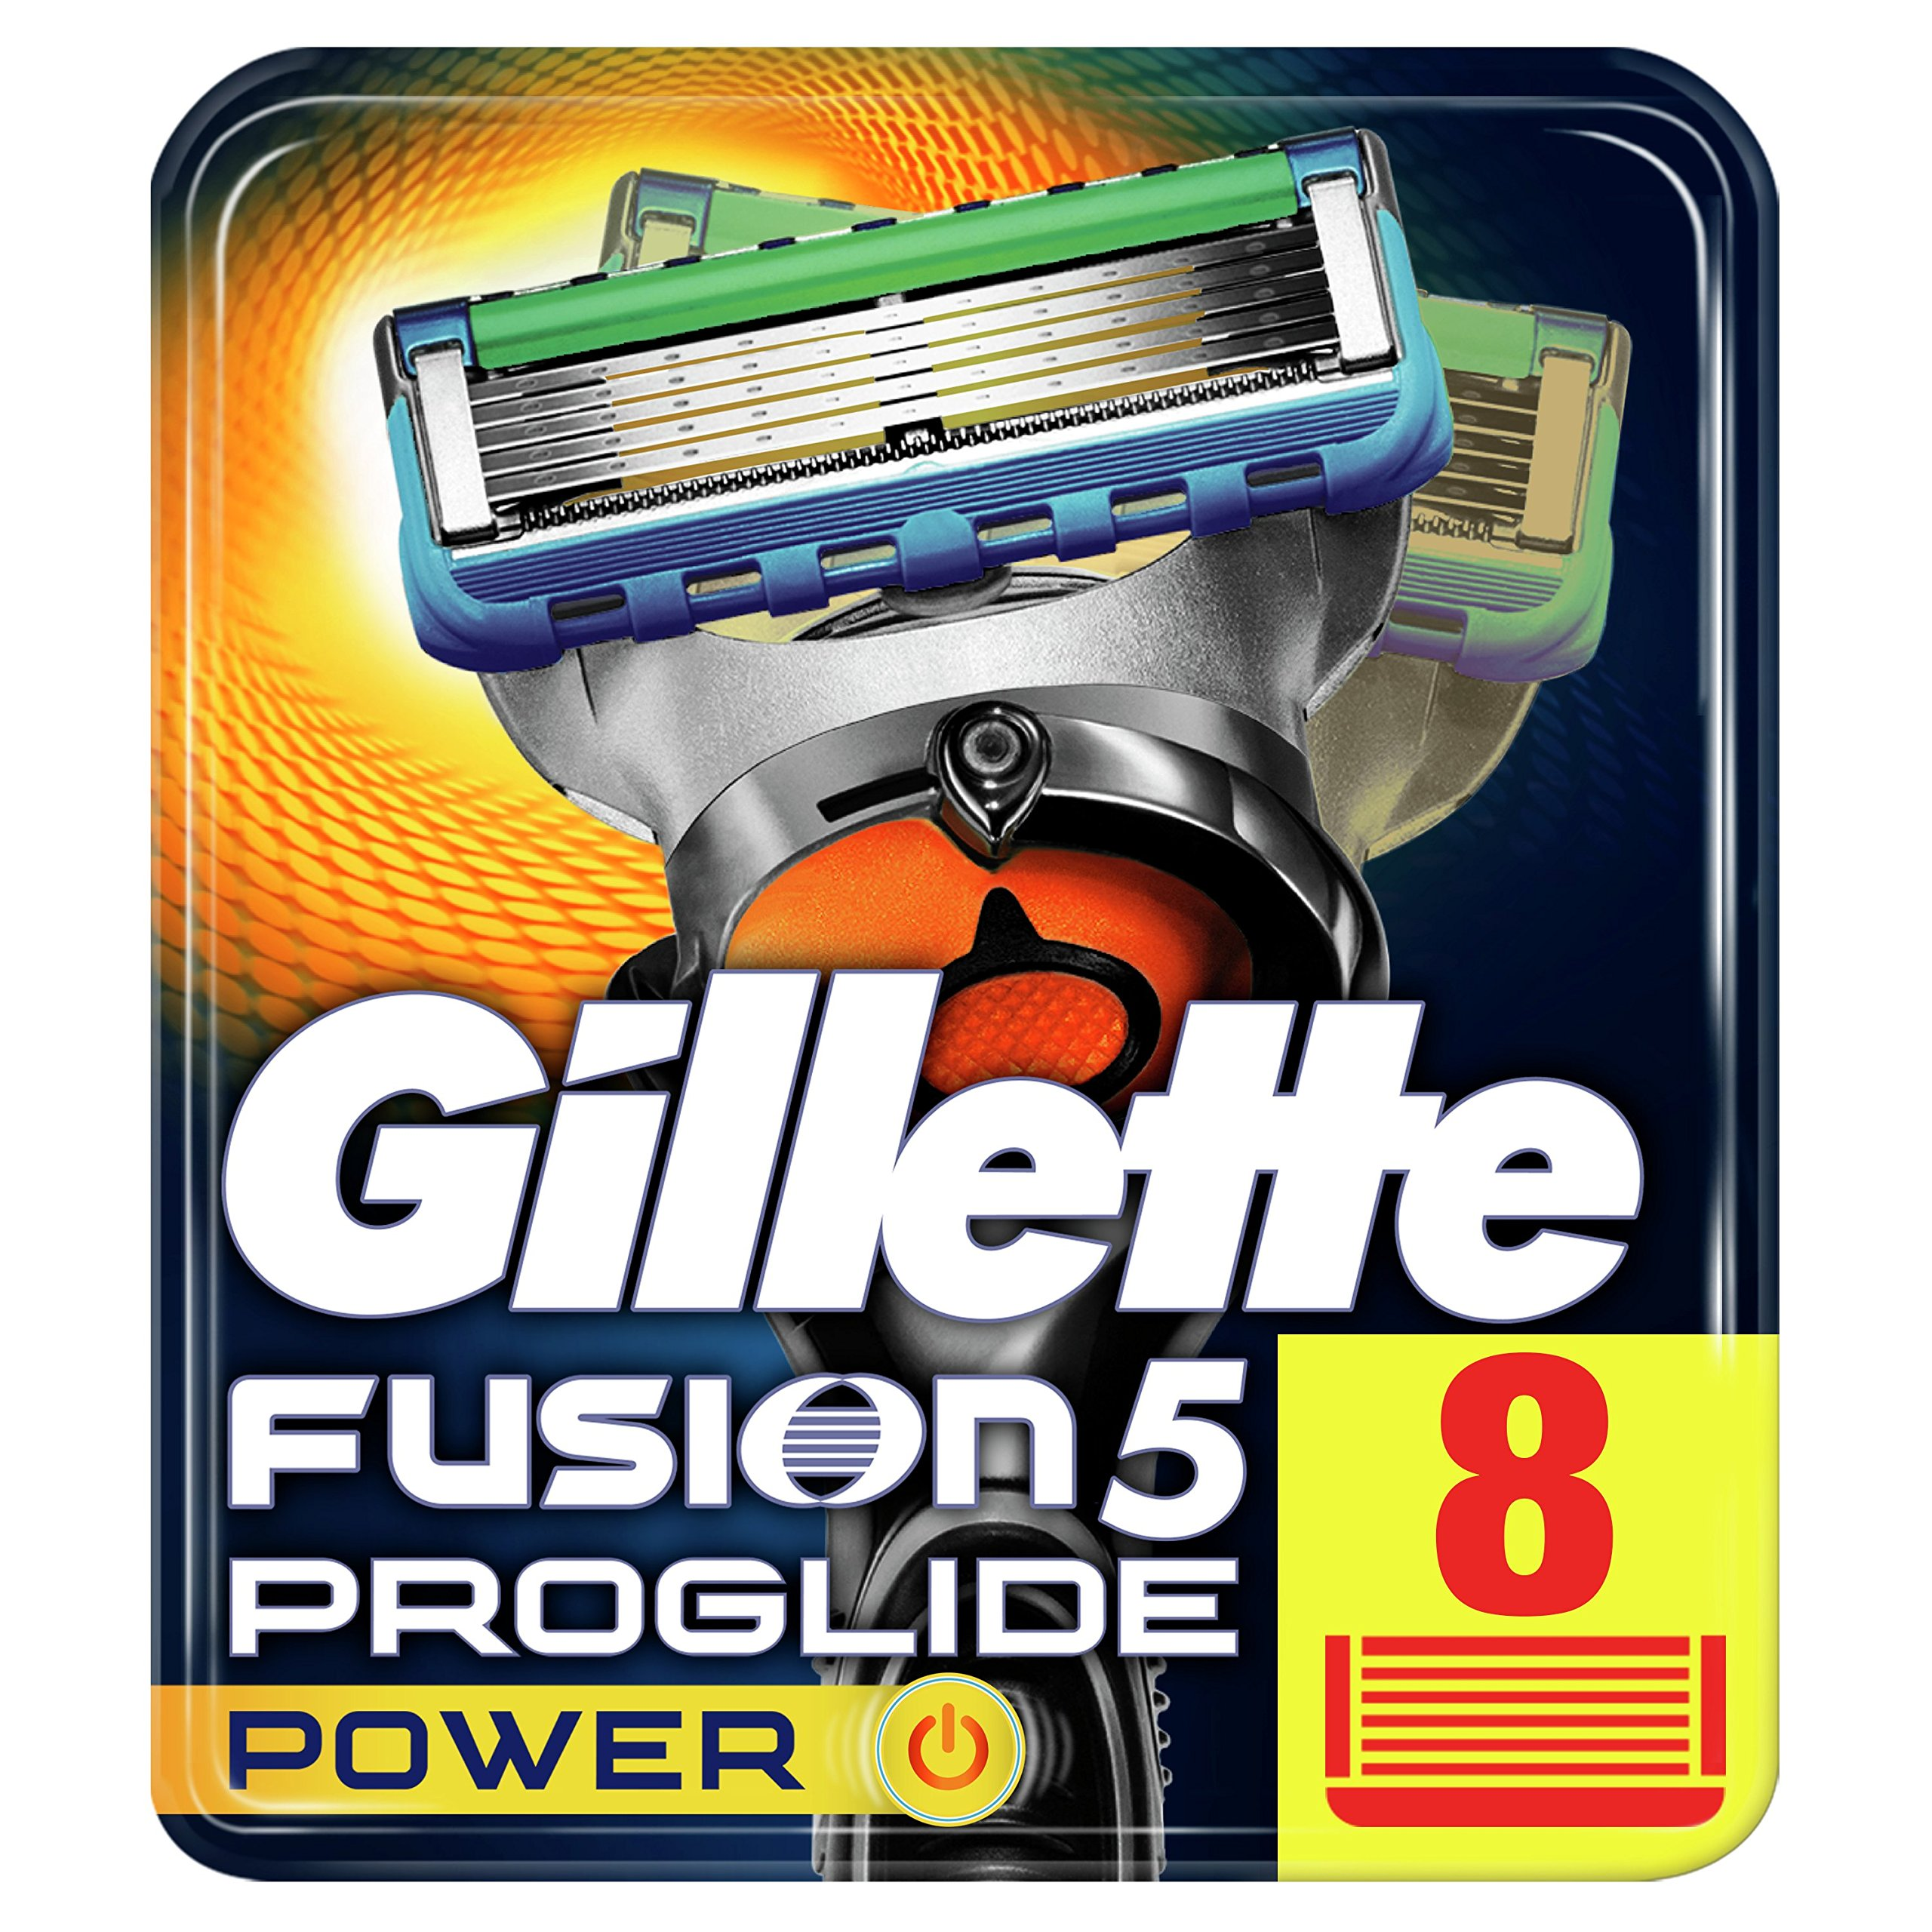 Gillette Fusion5 ProGlide Power Razor Blades for Men with FlexBall Technology That Responds to Contours, 8 Refills (Packaging May Vary) product image